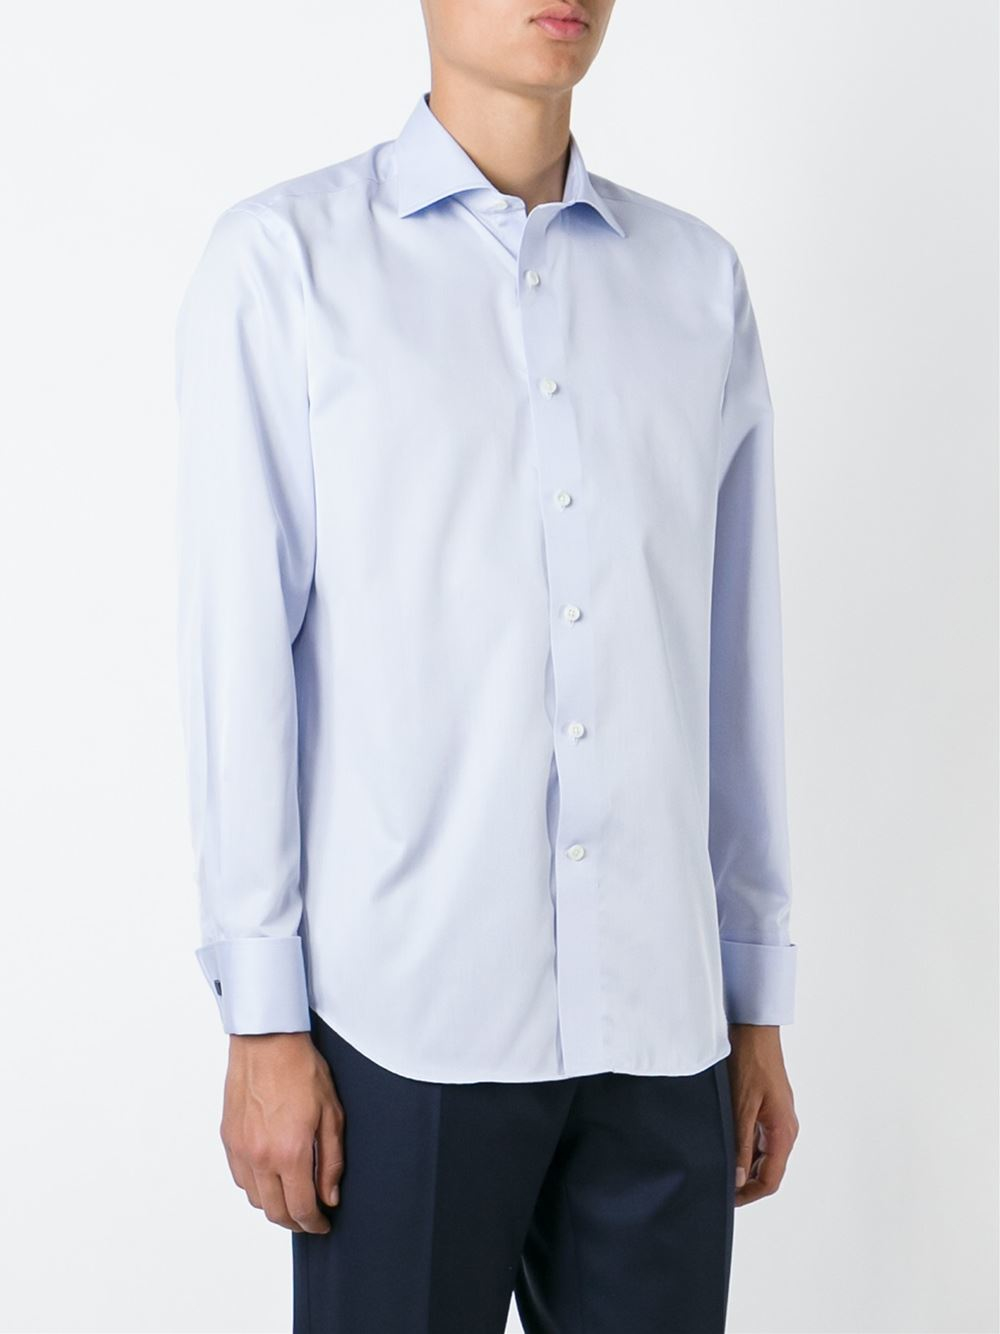 Canali Cuffed Classic Button Down Shirt In Blue For Men Lyst